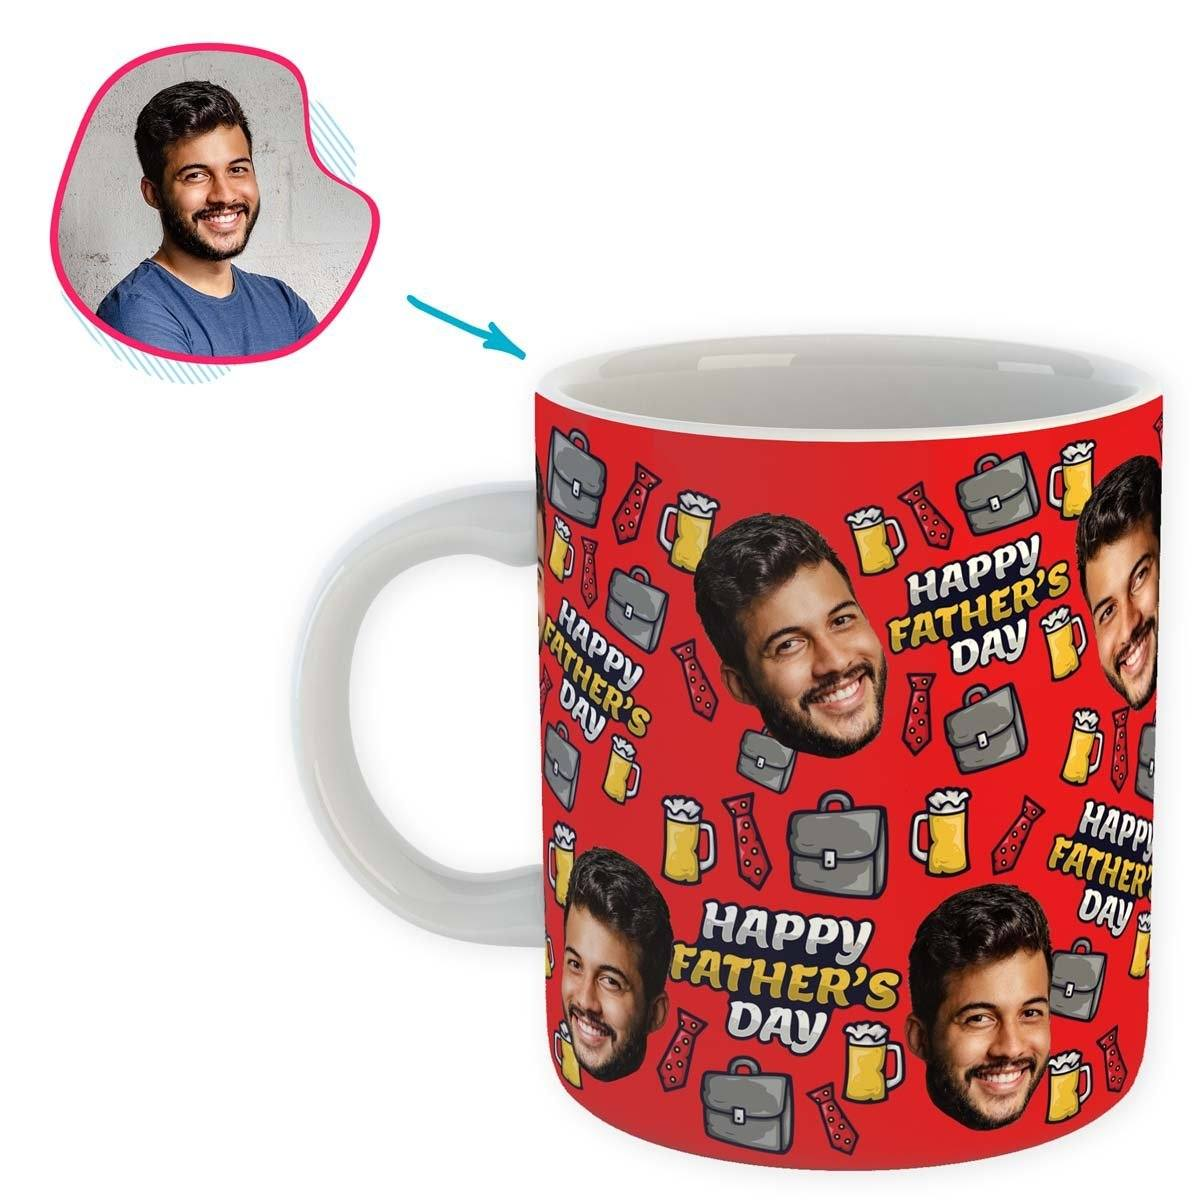 Red Fathers Day personalized mug with photo of face printed on it